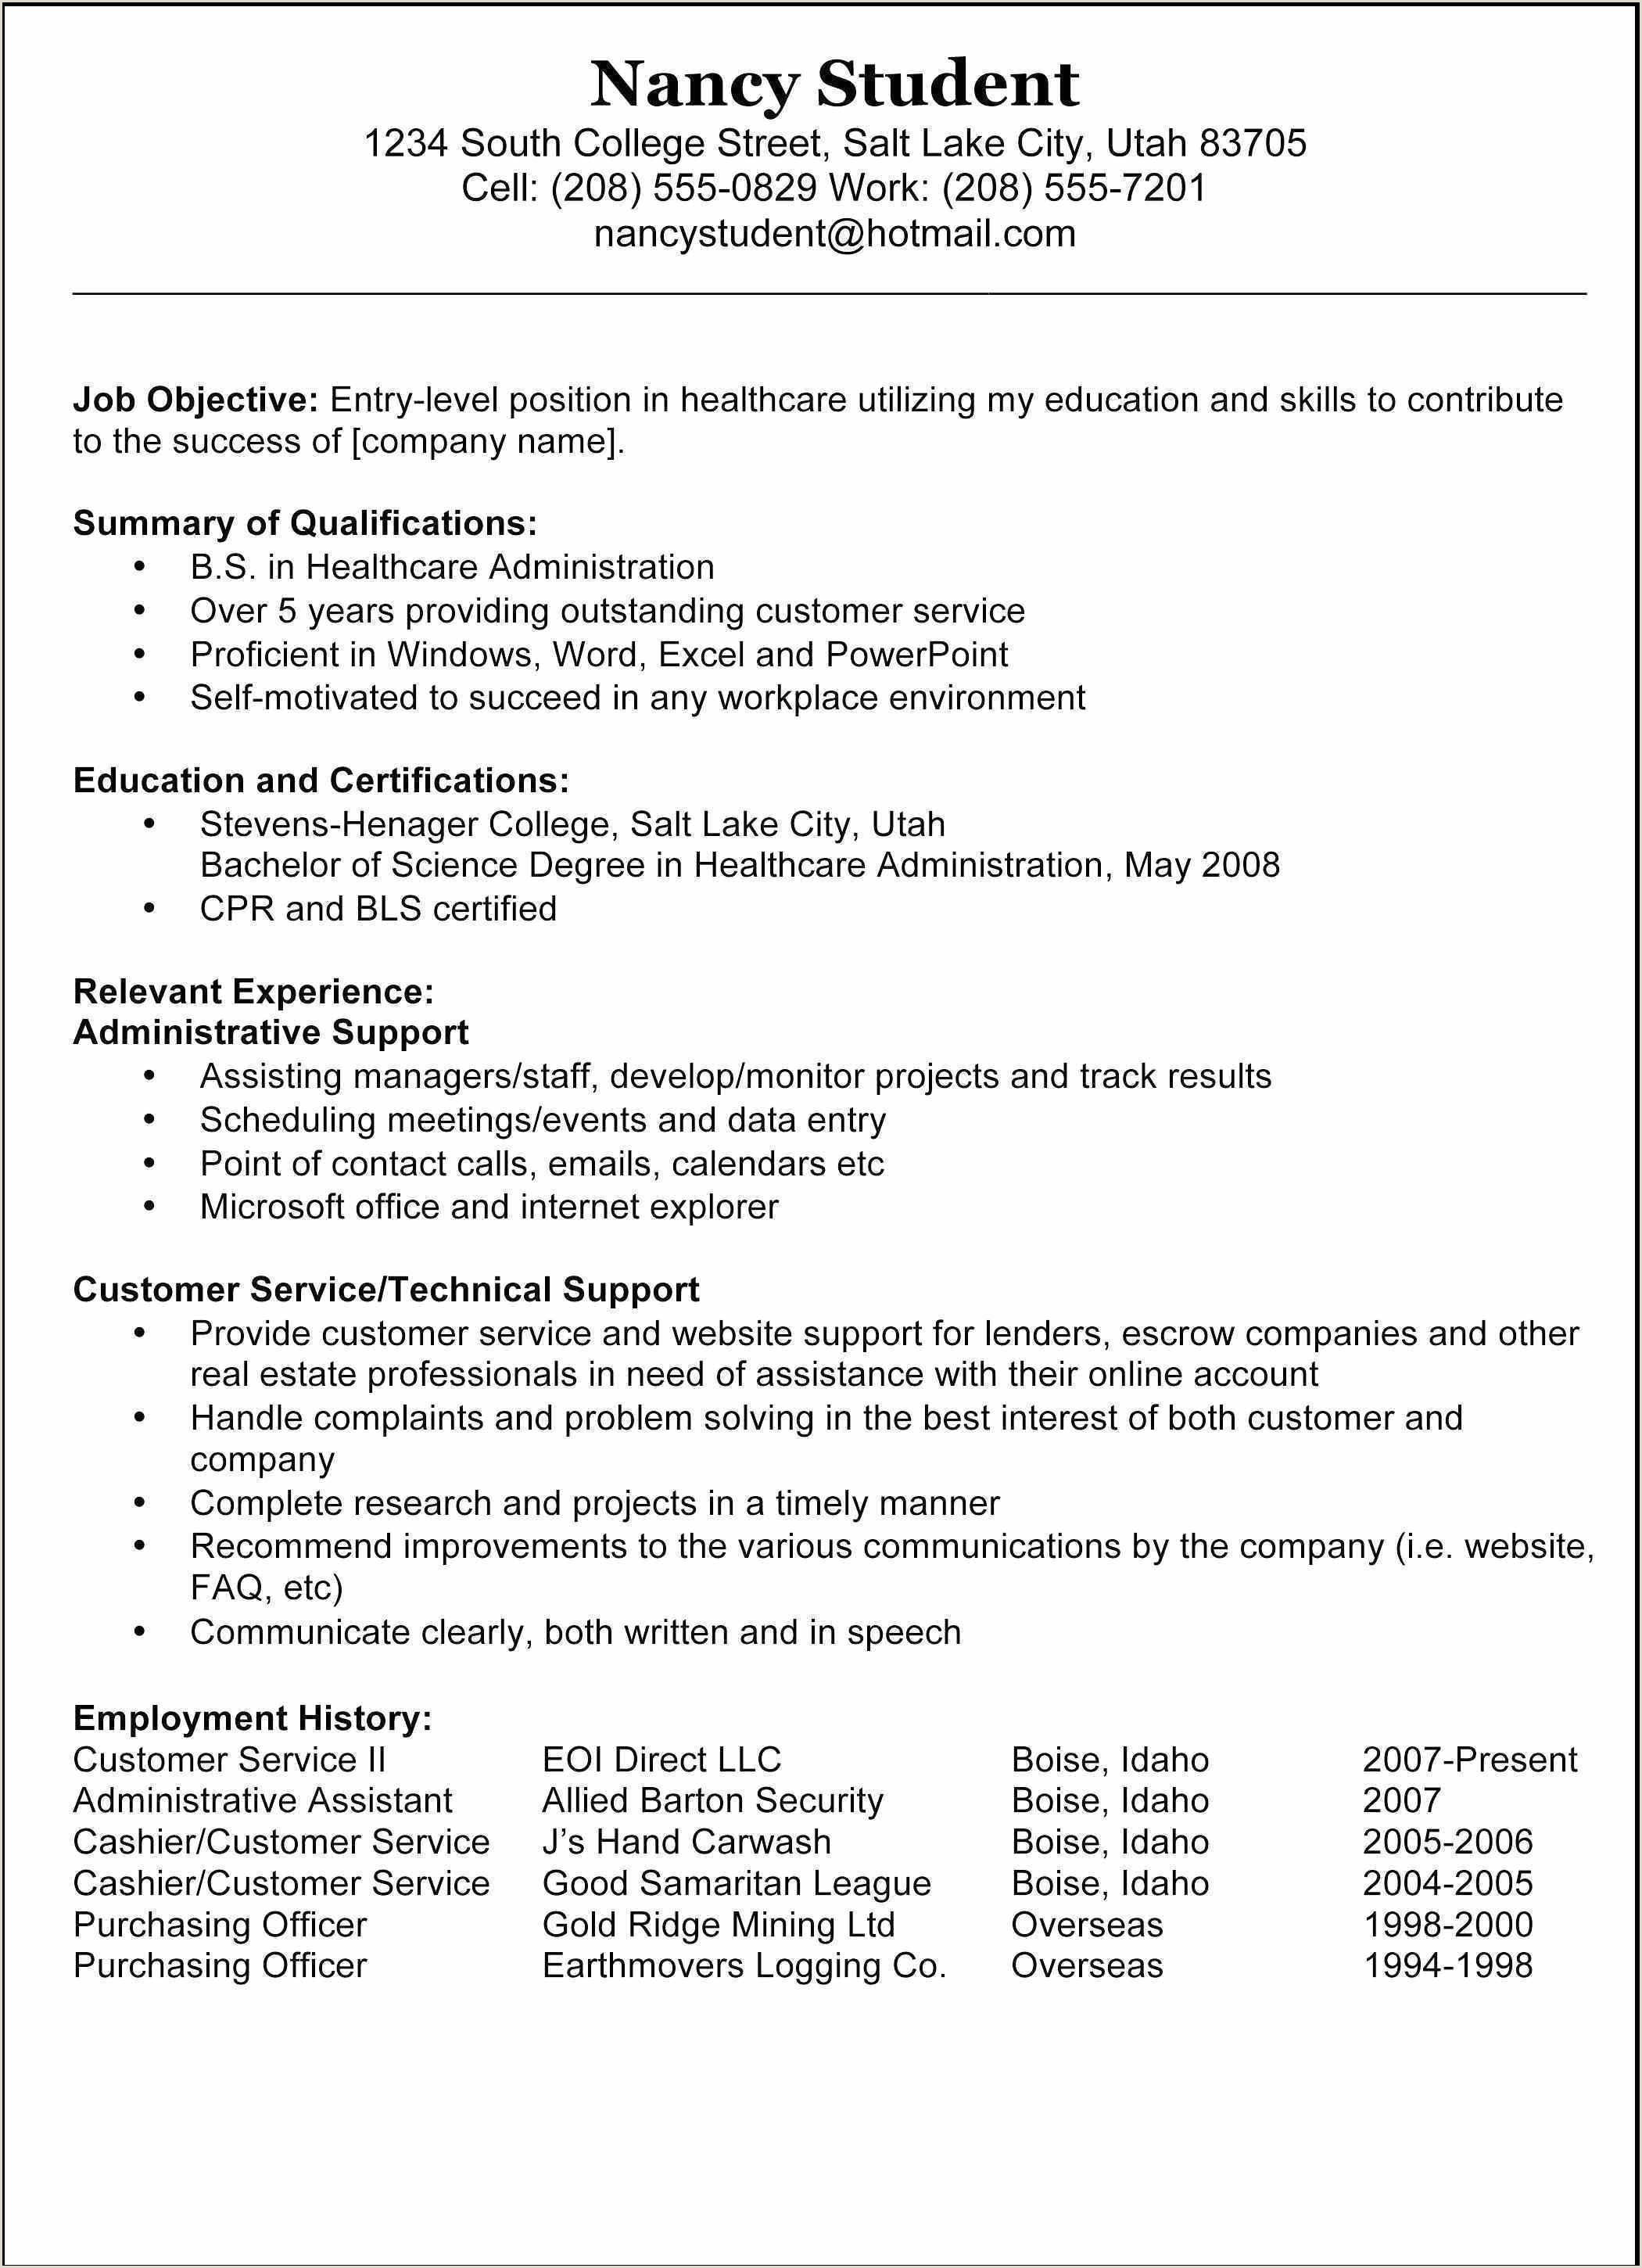 Cover Letter Executive assistant Unique Examples Cover Letters for Admin Jobs